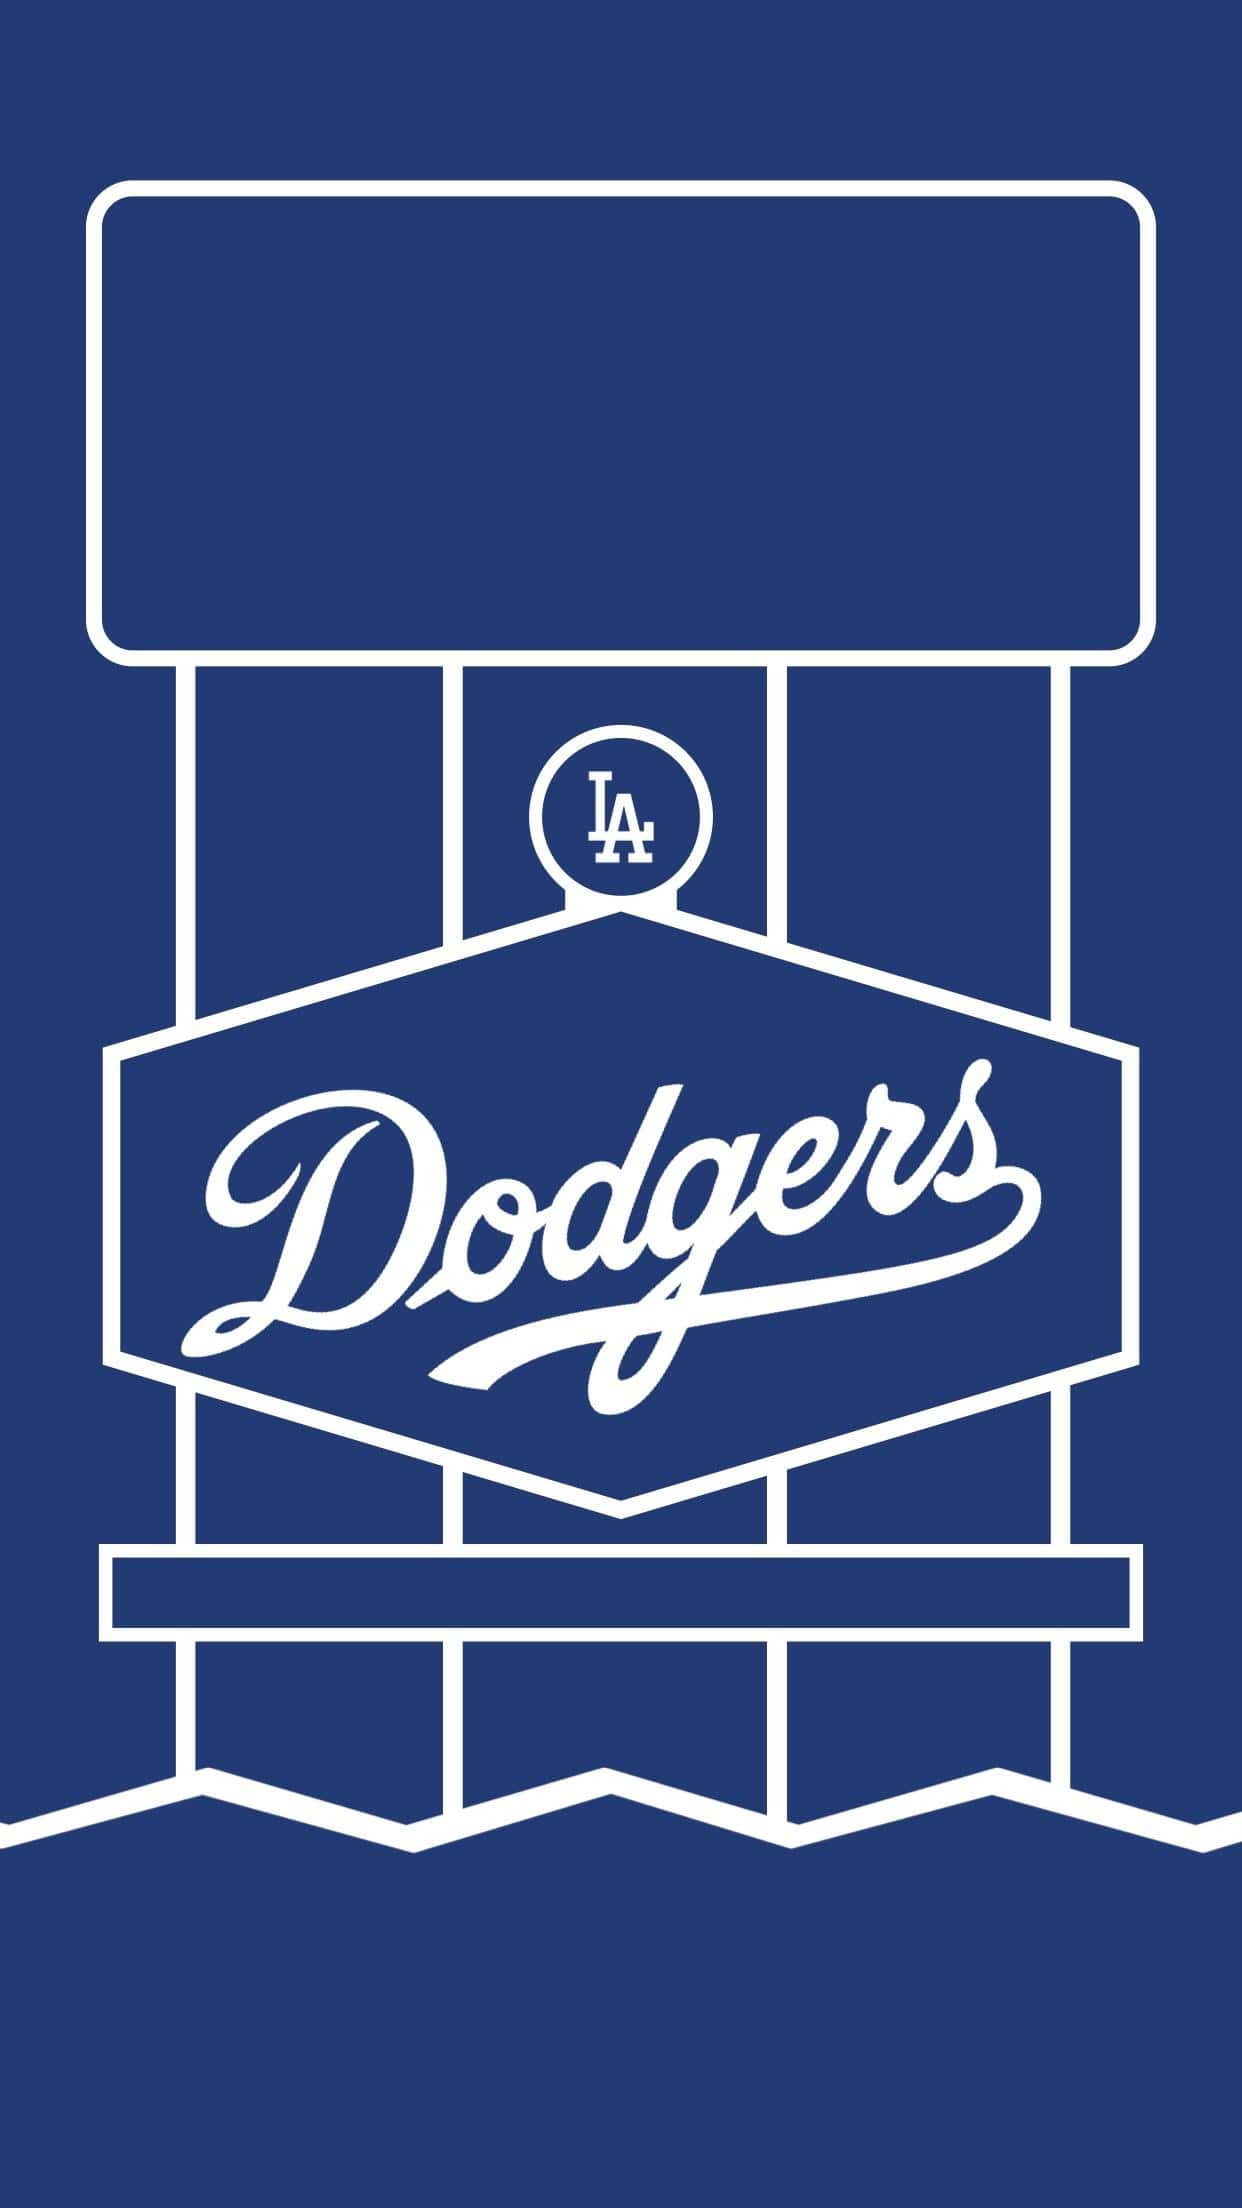 Los Angeles Dodgers Wallpaper Kolpaper Awesome Free Hd Wallpapers